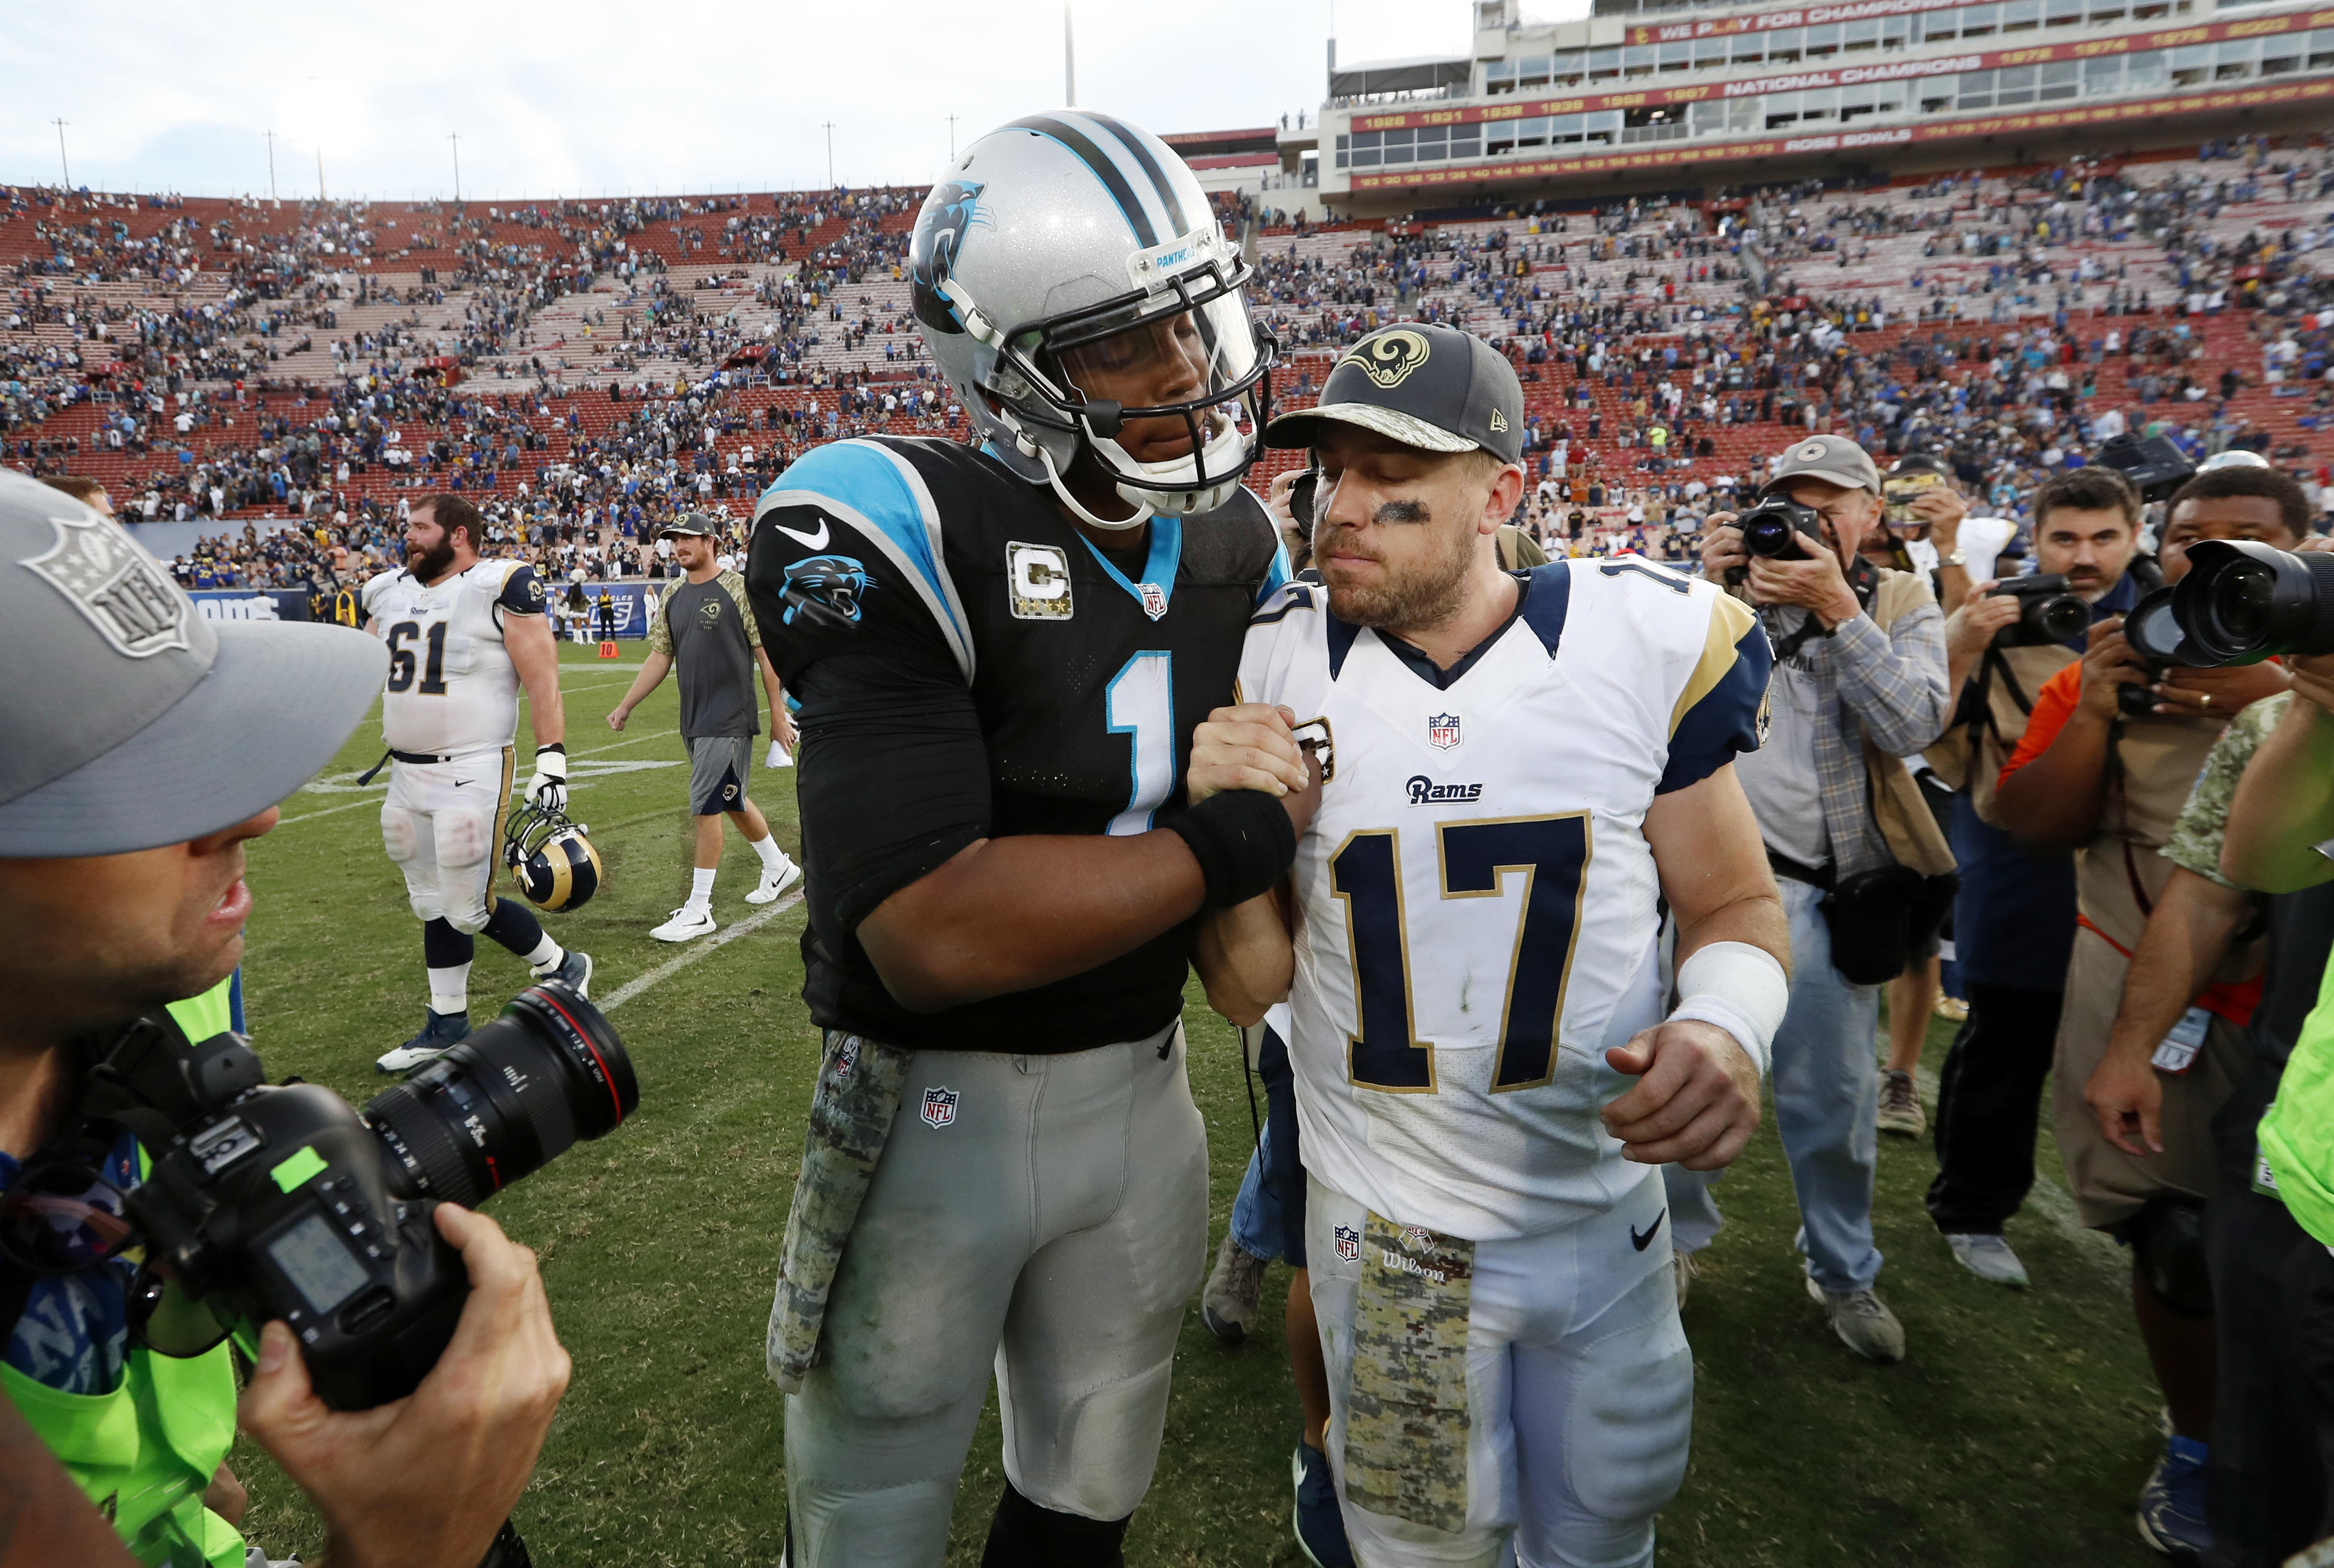 Carolina Panthers quarterback Cam Newton, center left, shakes hands with Los Angeles Rams quarterback Case Keenum after the Panthers defeated the Rams in an NFL football game, Sunday, Nov. 6, 2016, in Los Angeles. (AP Photo/Ryan Kang)